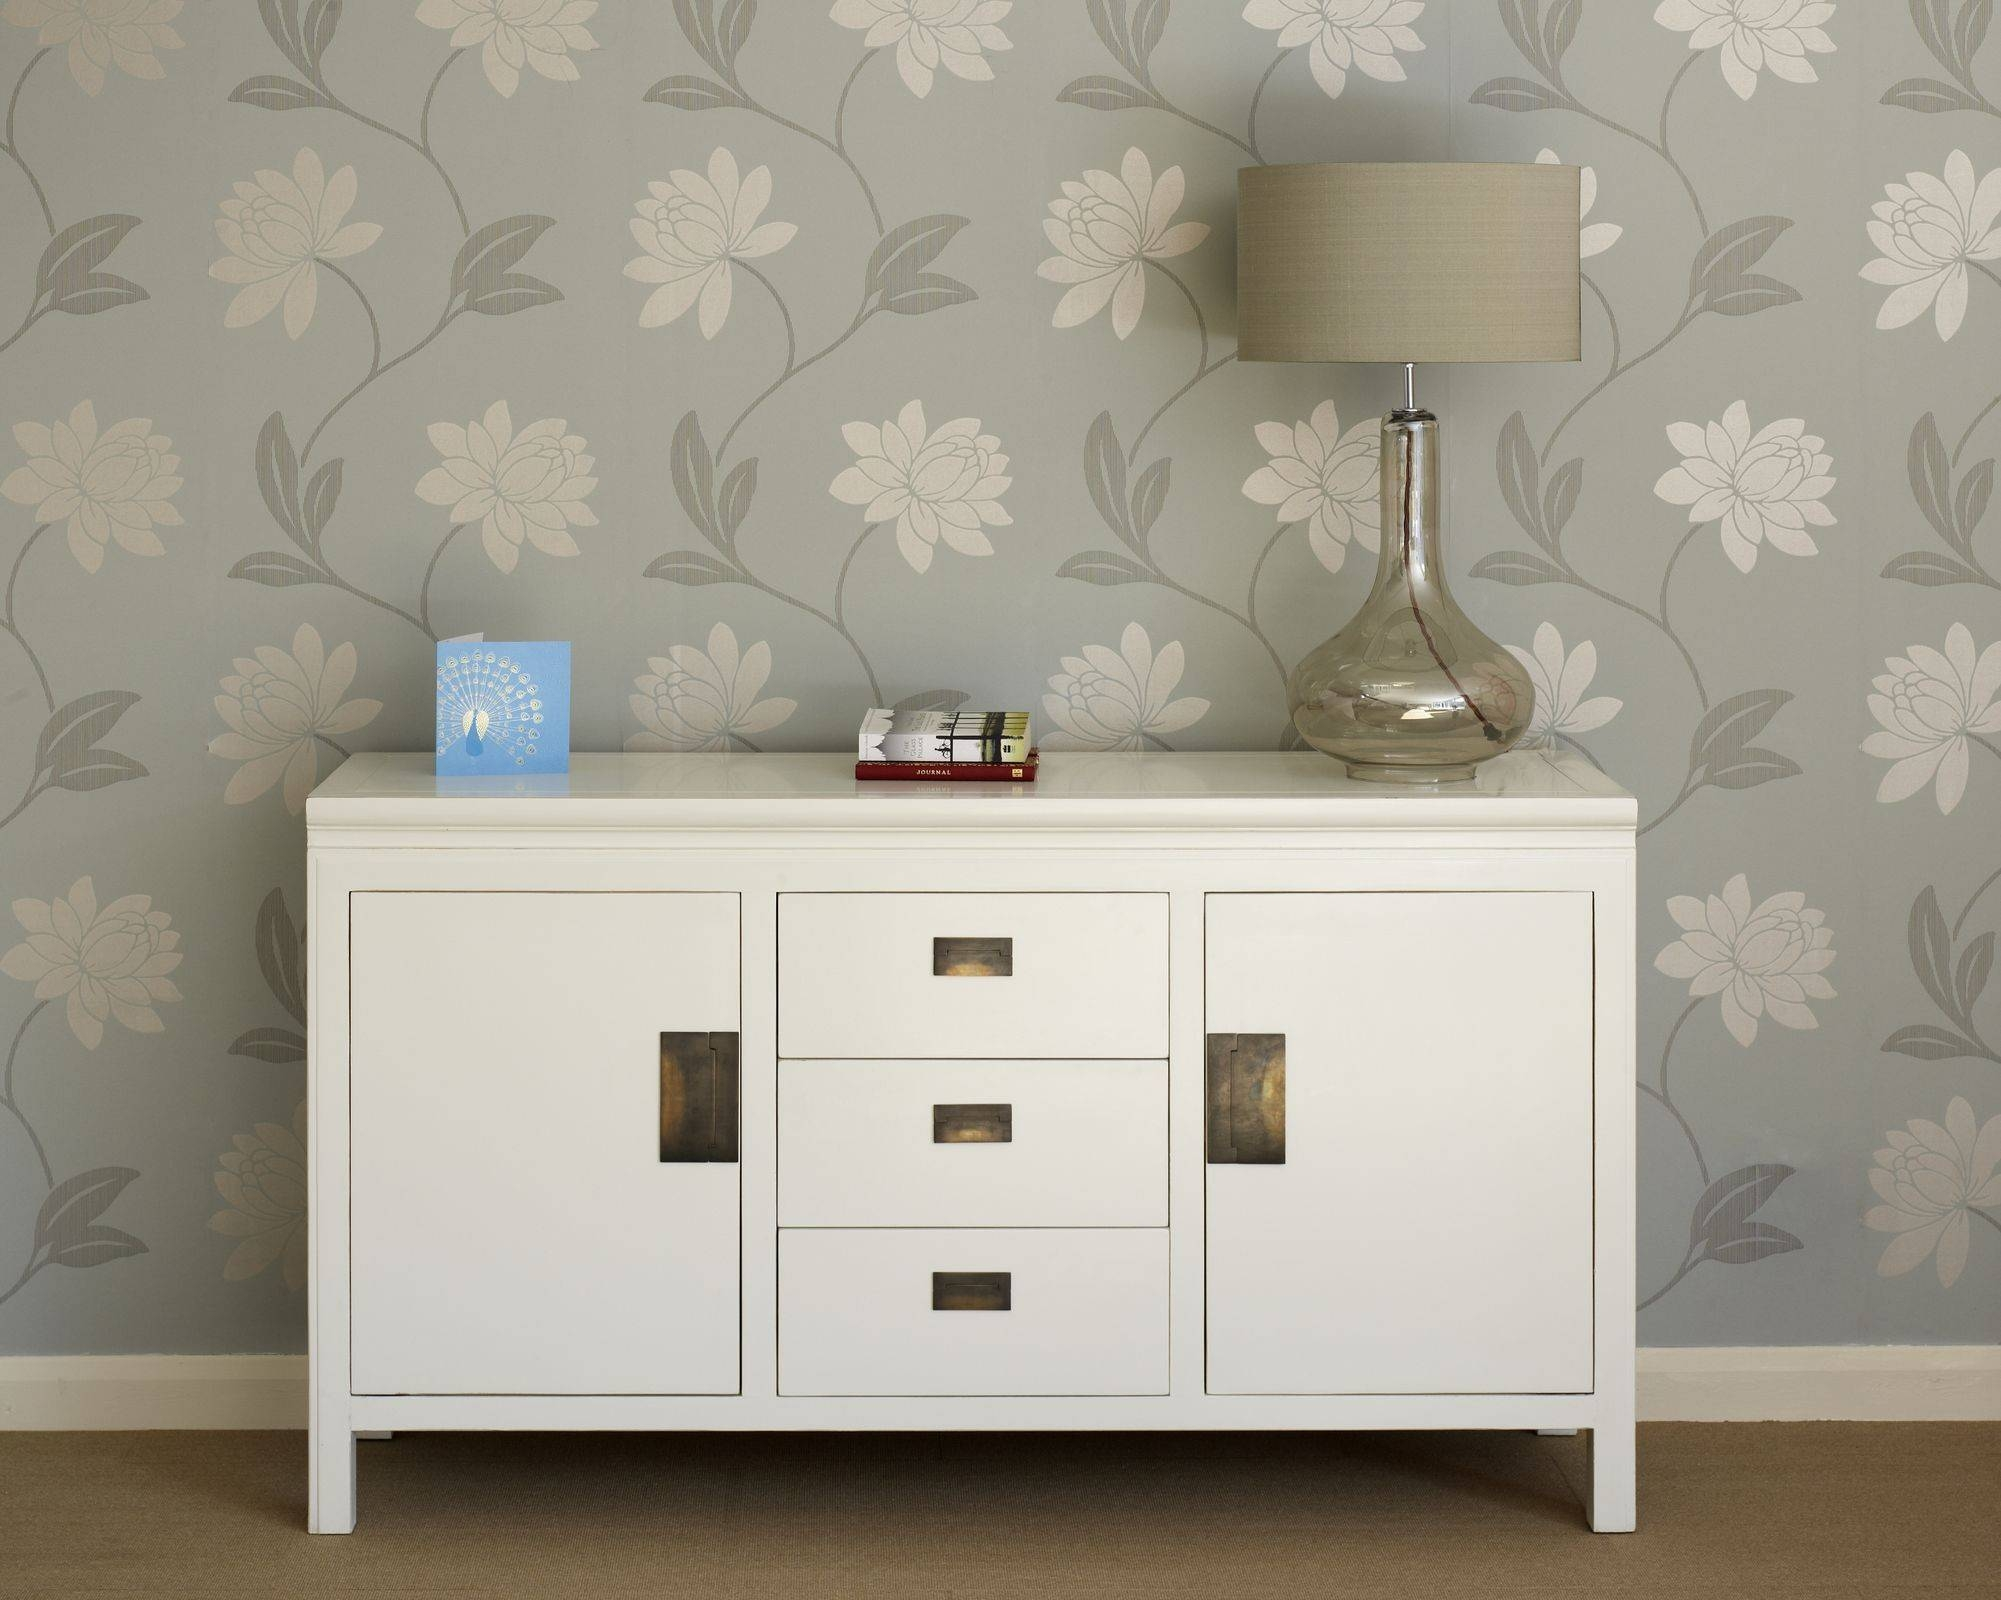 Oriental White Lacquer Sideboards - Shanxi regarding White Sideboards (Image 12 of 30)